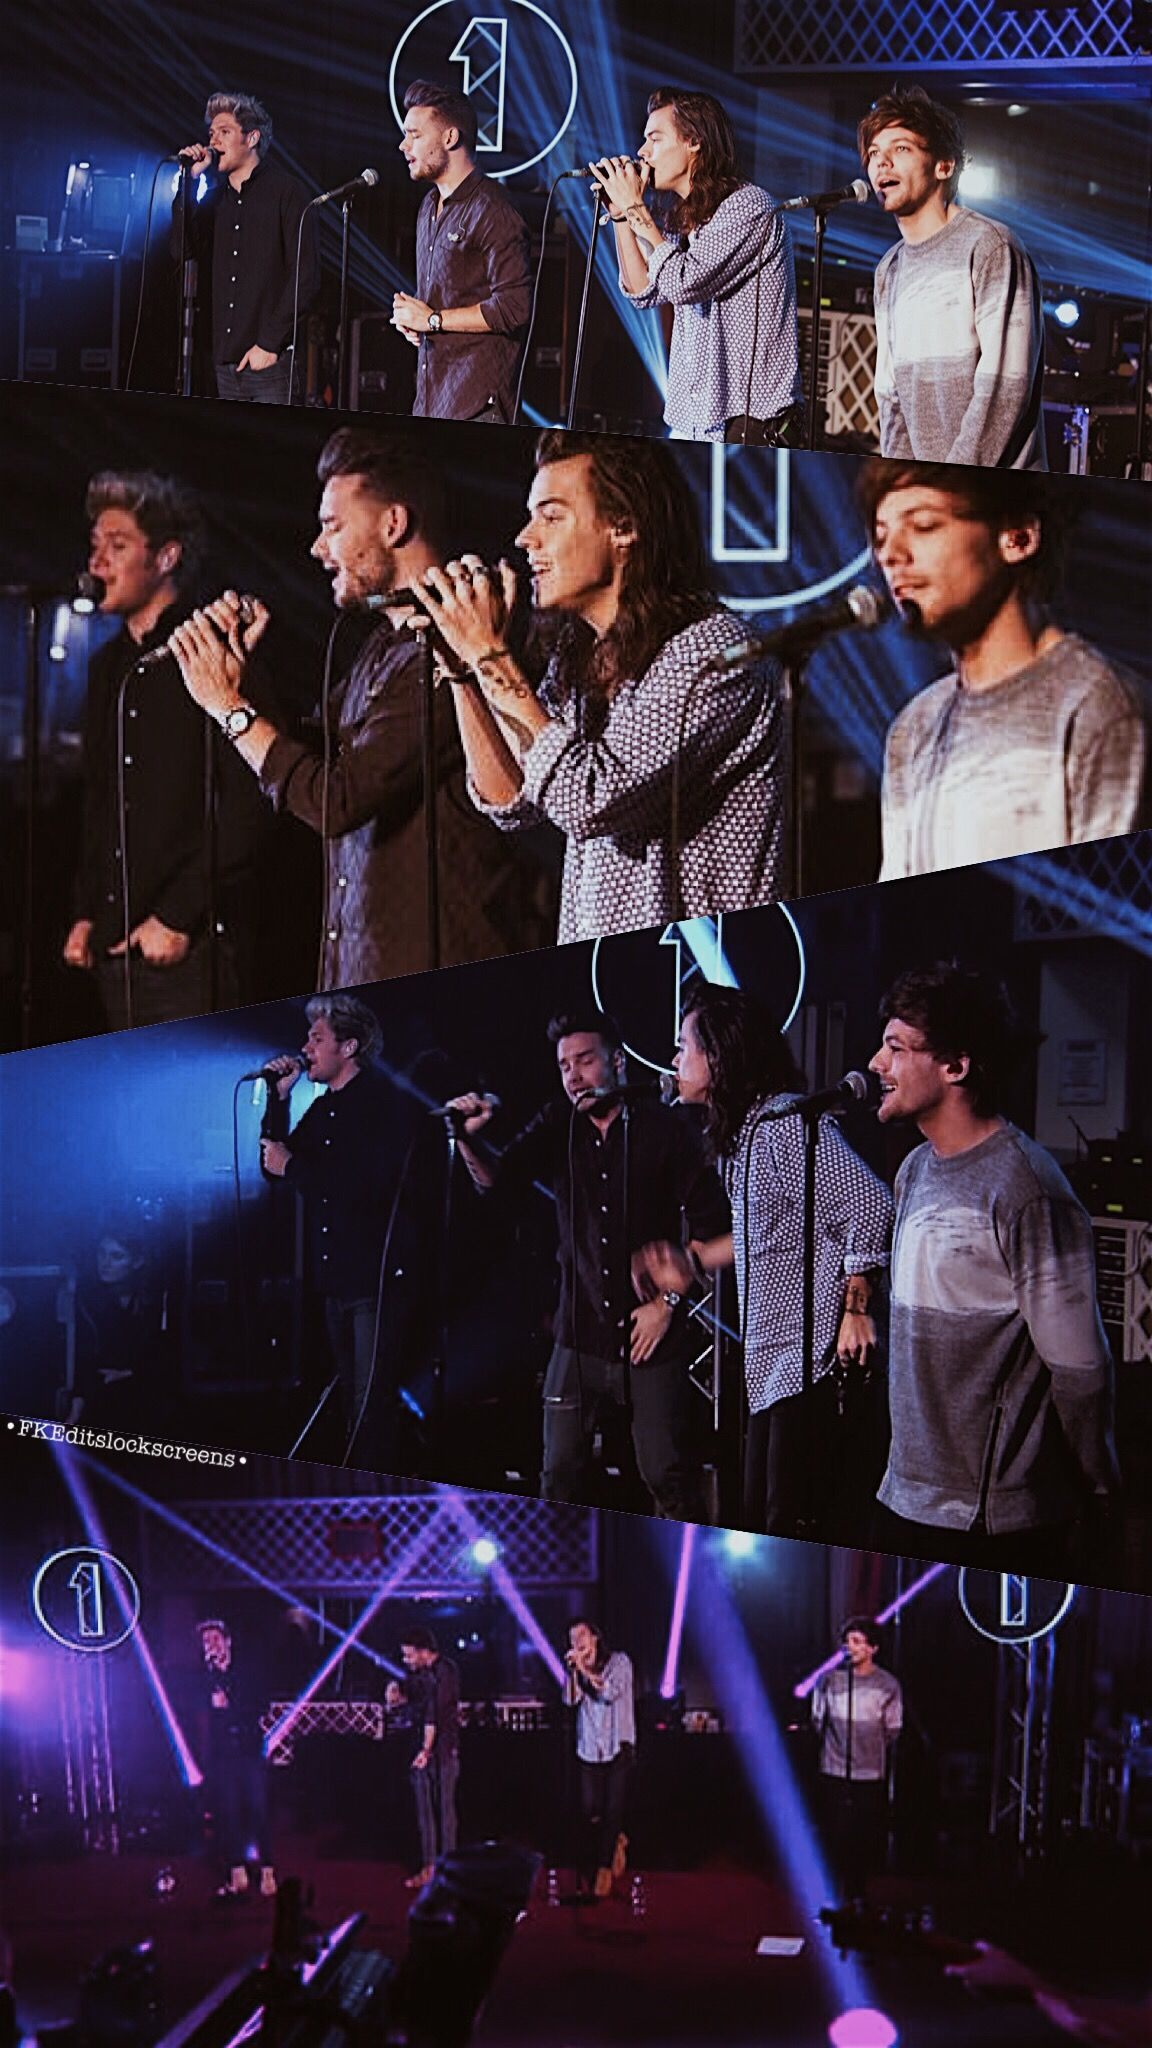 One Direction lockscreen    BBC Radio 1 Lounge performance